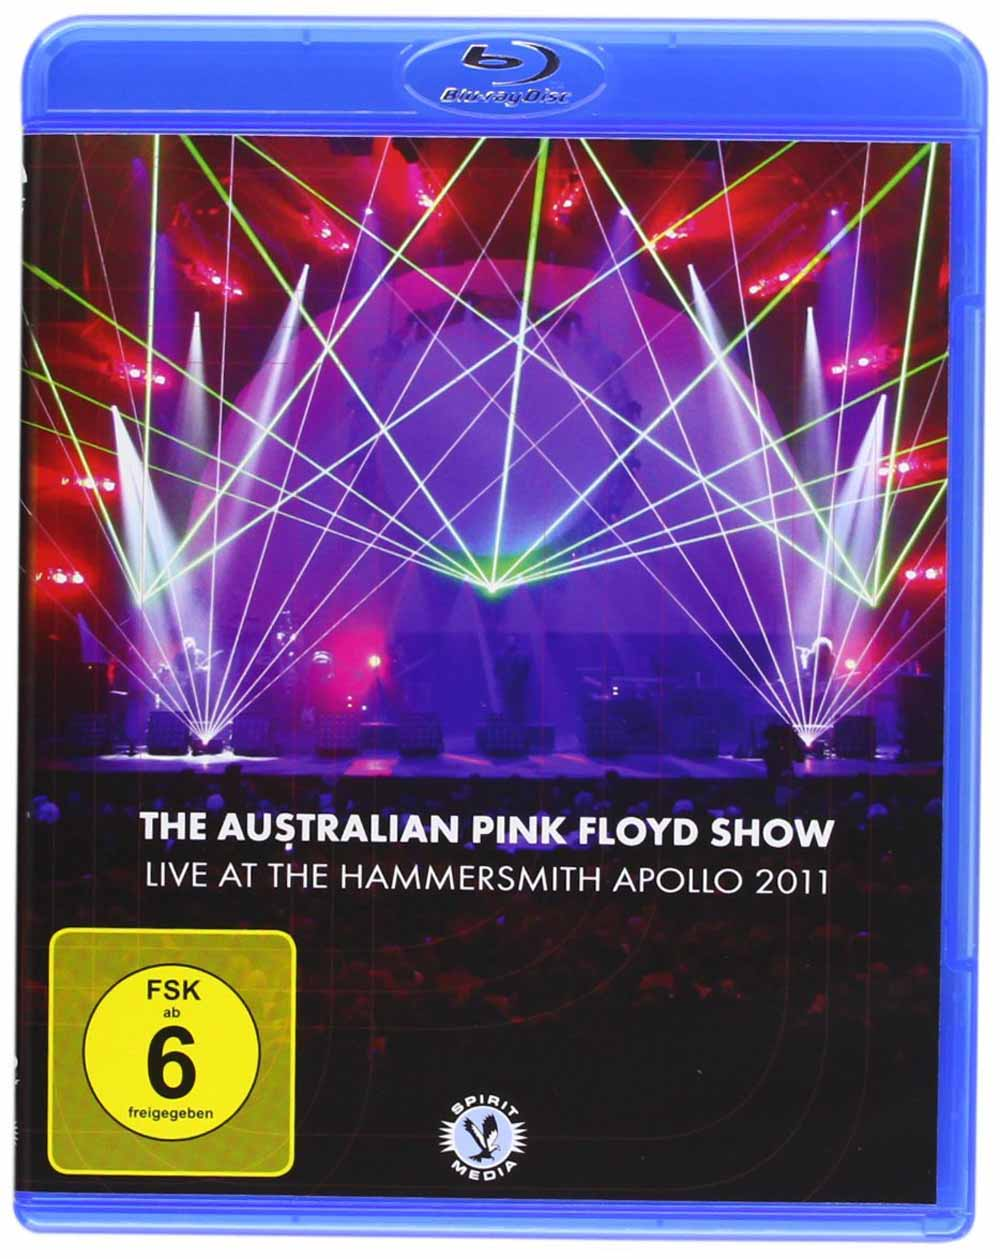 AUSTRALIAN PINK FLOYD SHOW - 2011 LIVE AT HAMMERSMITH APOLLO 2011